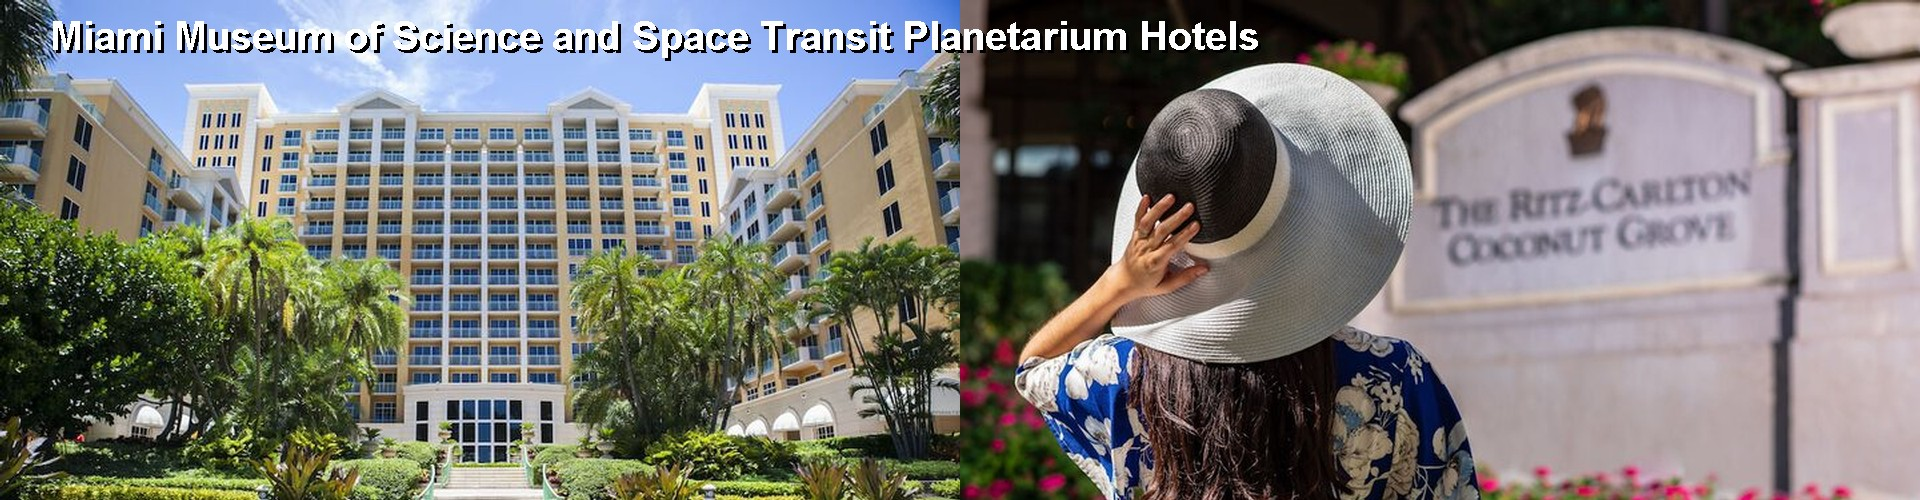 5 Best Hotels near Miami Museum of Science and Space Transit Planetarium